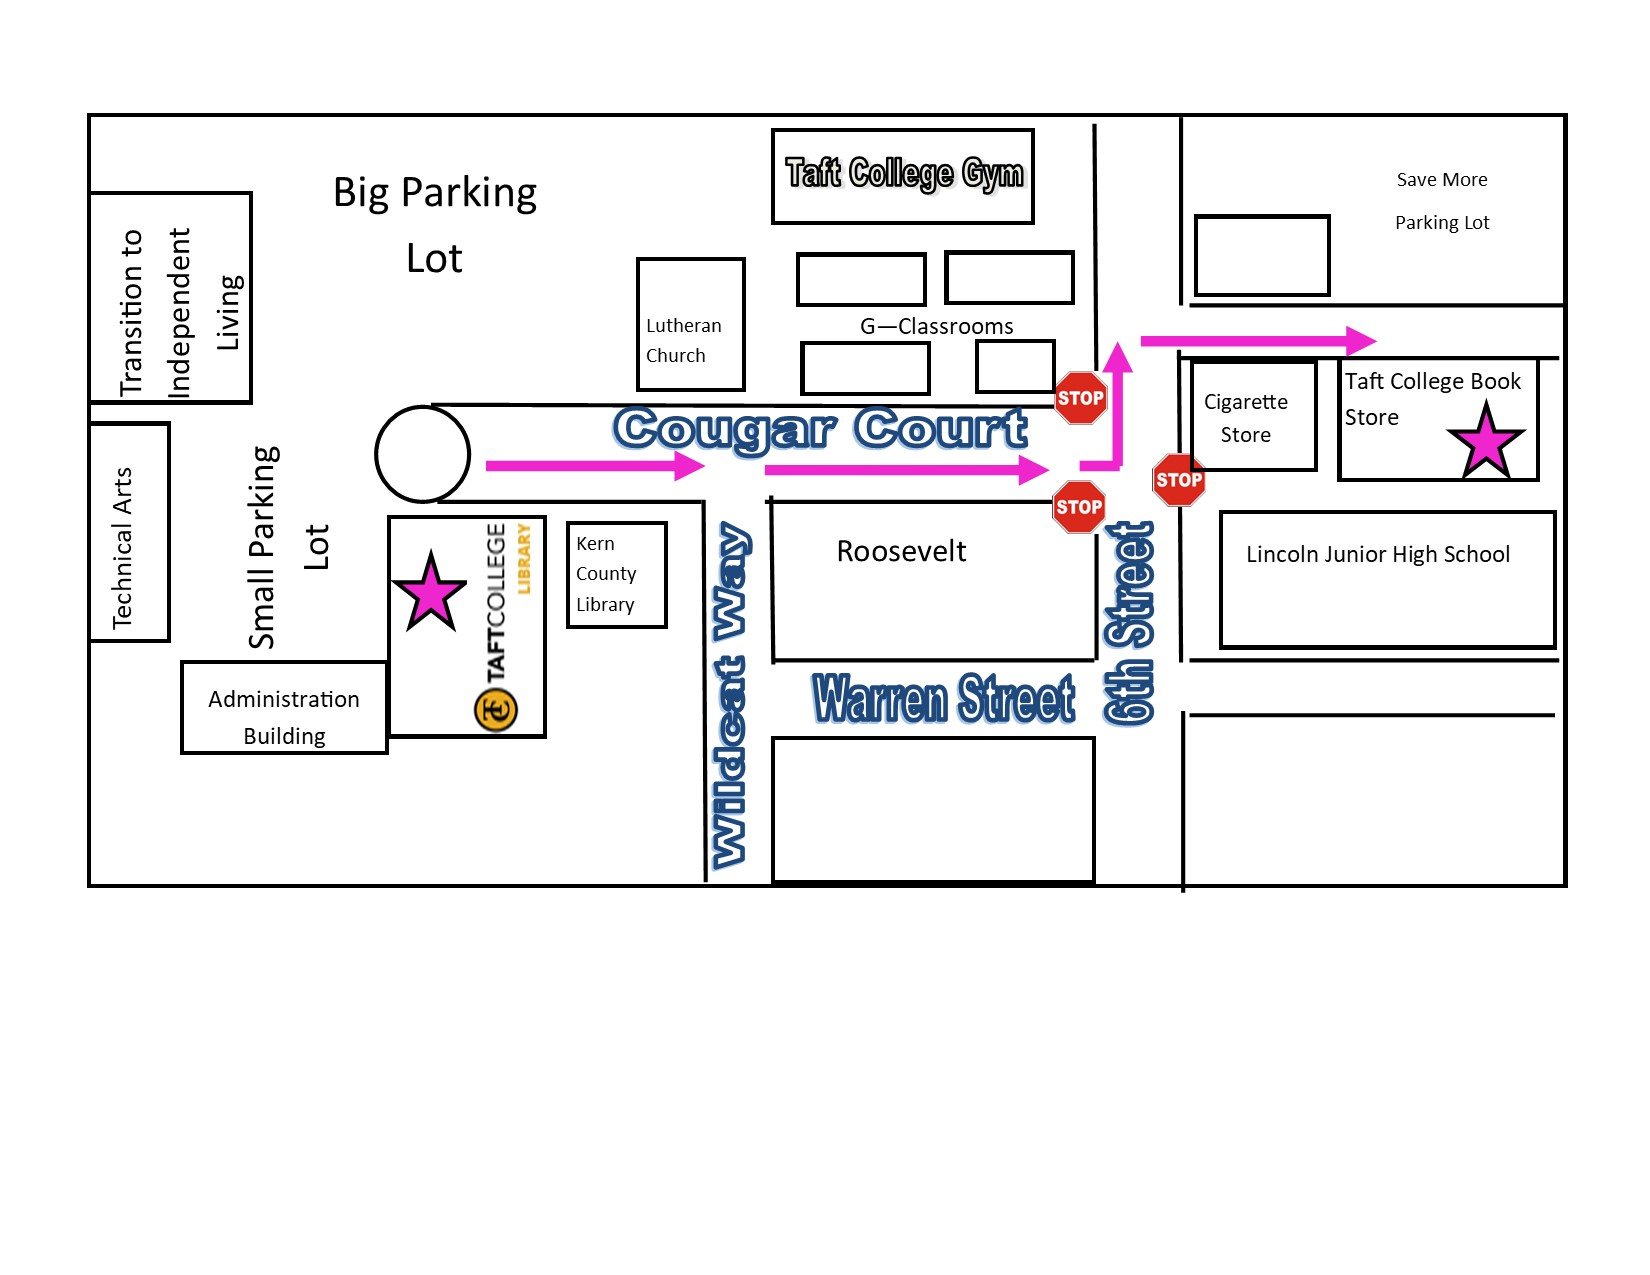 To get to the bookstore from the Taft College library, you need to take cougar court, past wildcat way, to the 3 way stop sign at 6th street. Turn left on 6th street, then turn right in the save more parking lot. The Taft College bookstore will be on the right hand side.